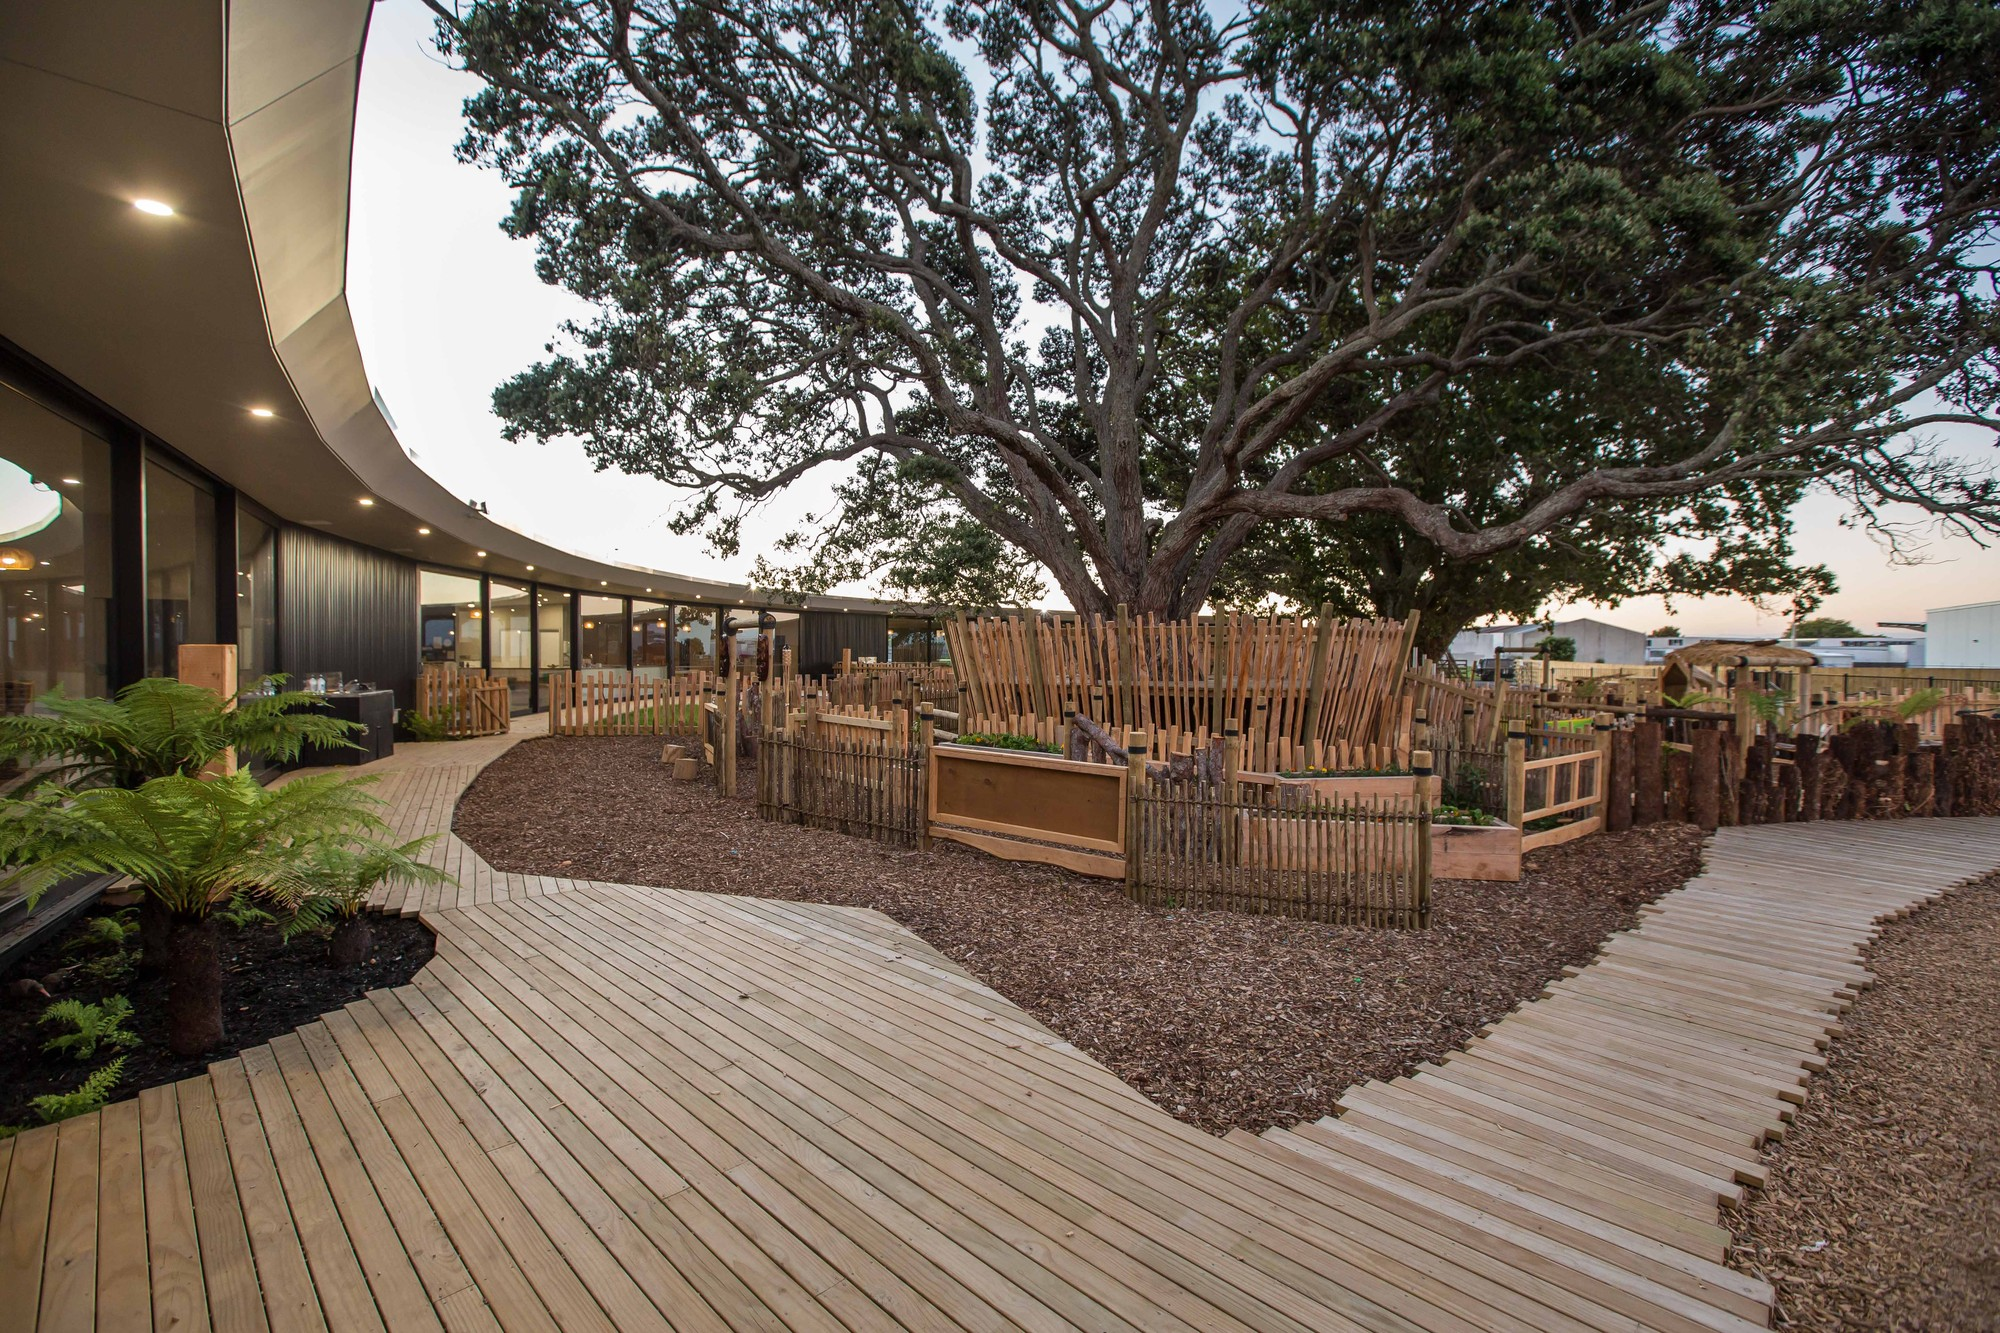 Chrysalis Childcare Centre / Collingridge and Smith Architects, Courtesy of Collingridge and Smith Architects